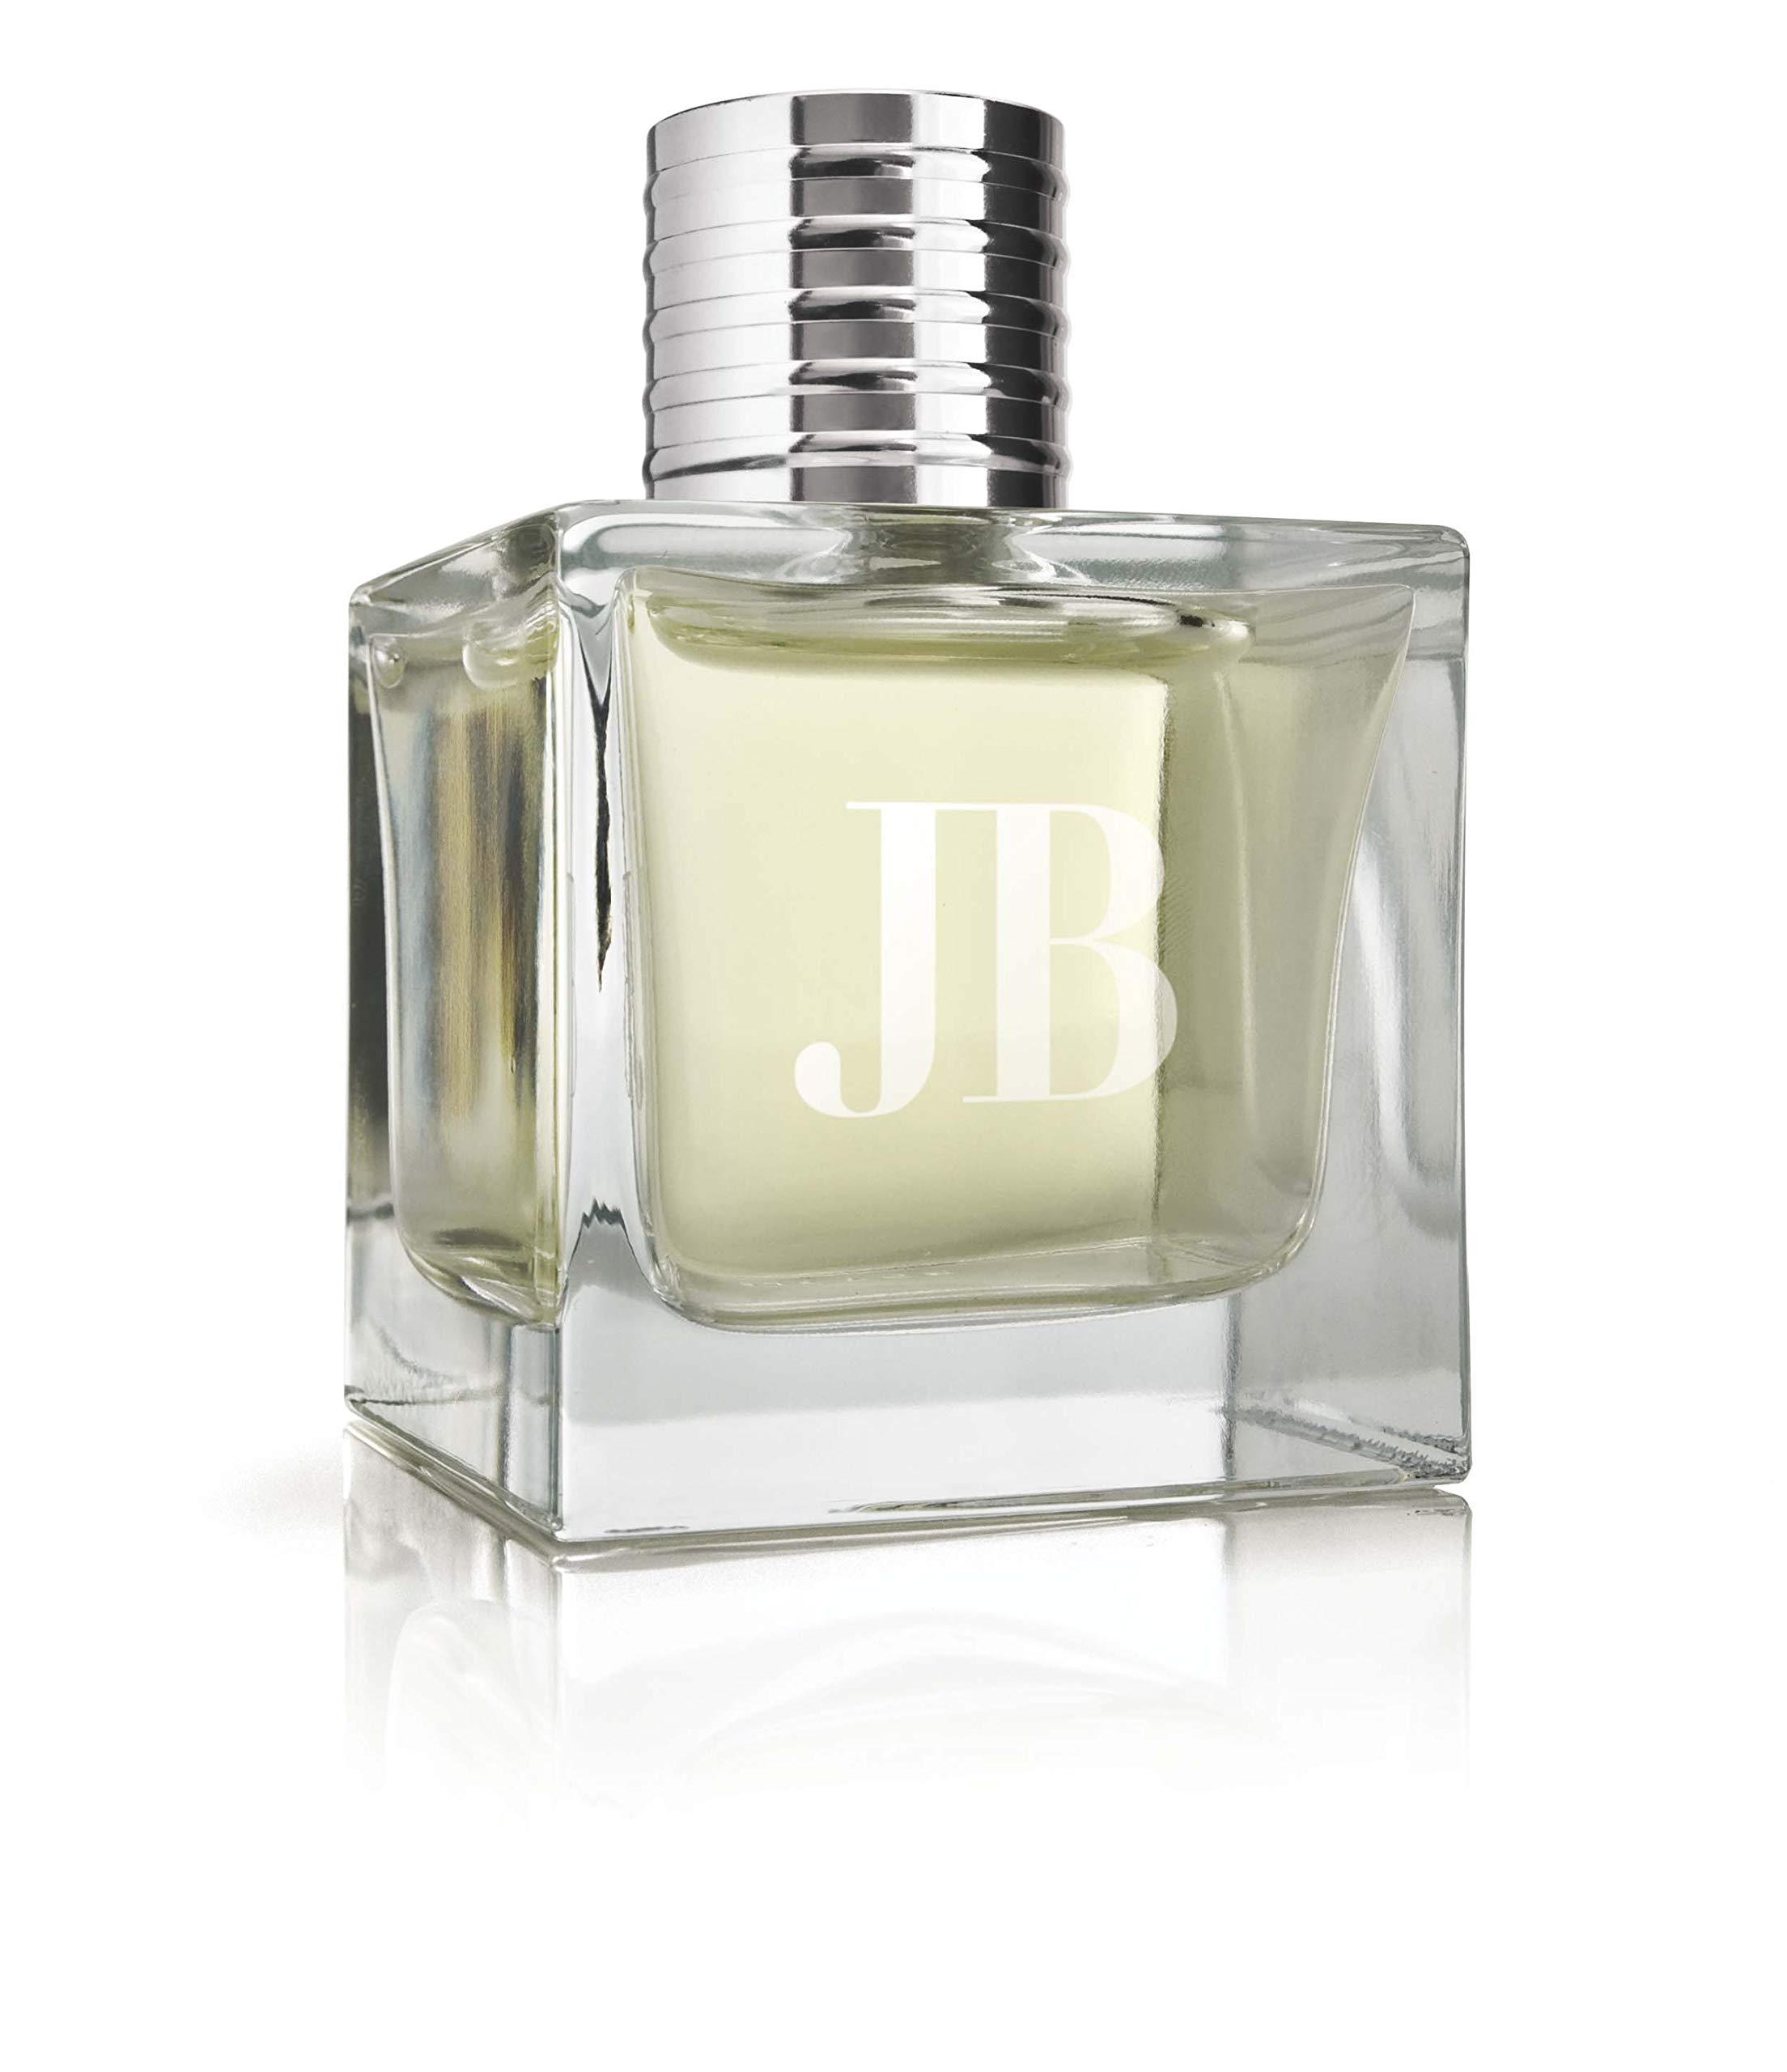 Jack Black - JB Eau de Parfum, 3.4 fl oz - Classic Men's Fragrance, Citrus and Warm Woods, Tangerine, Black Pepper, Peppermint, Eucalyptus, Geranium, Orchid, Papyrus, Black Amber, and Blonde Woods by Jack Black